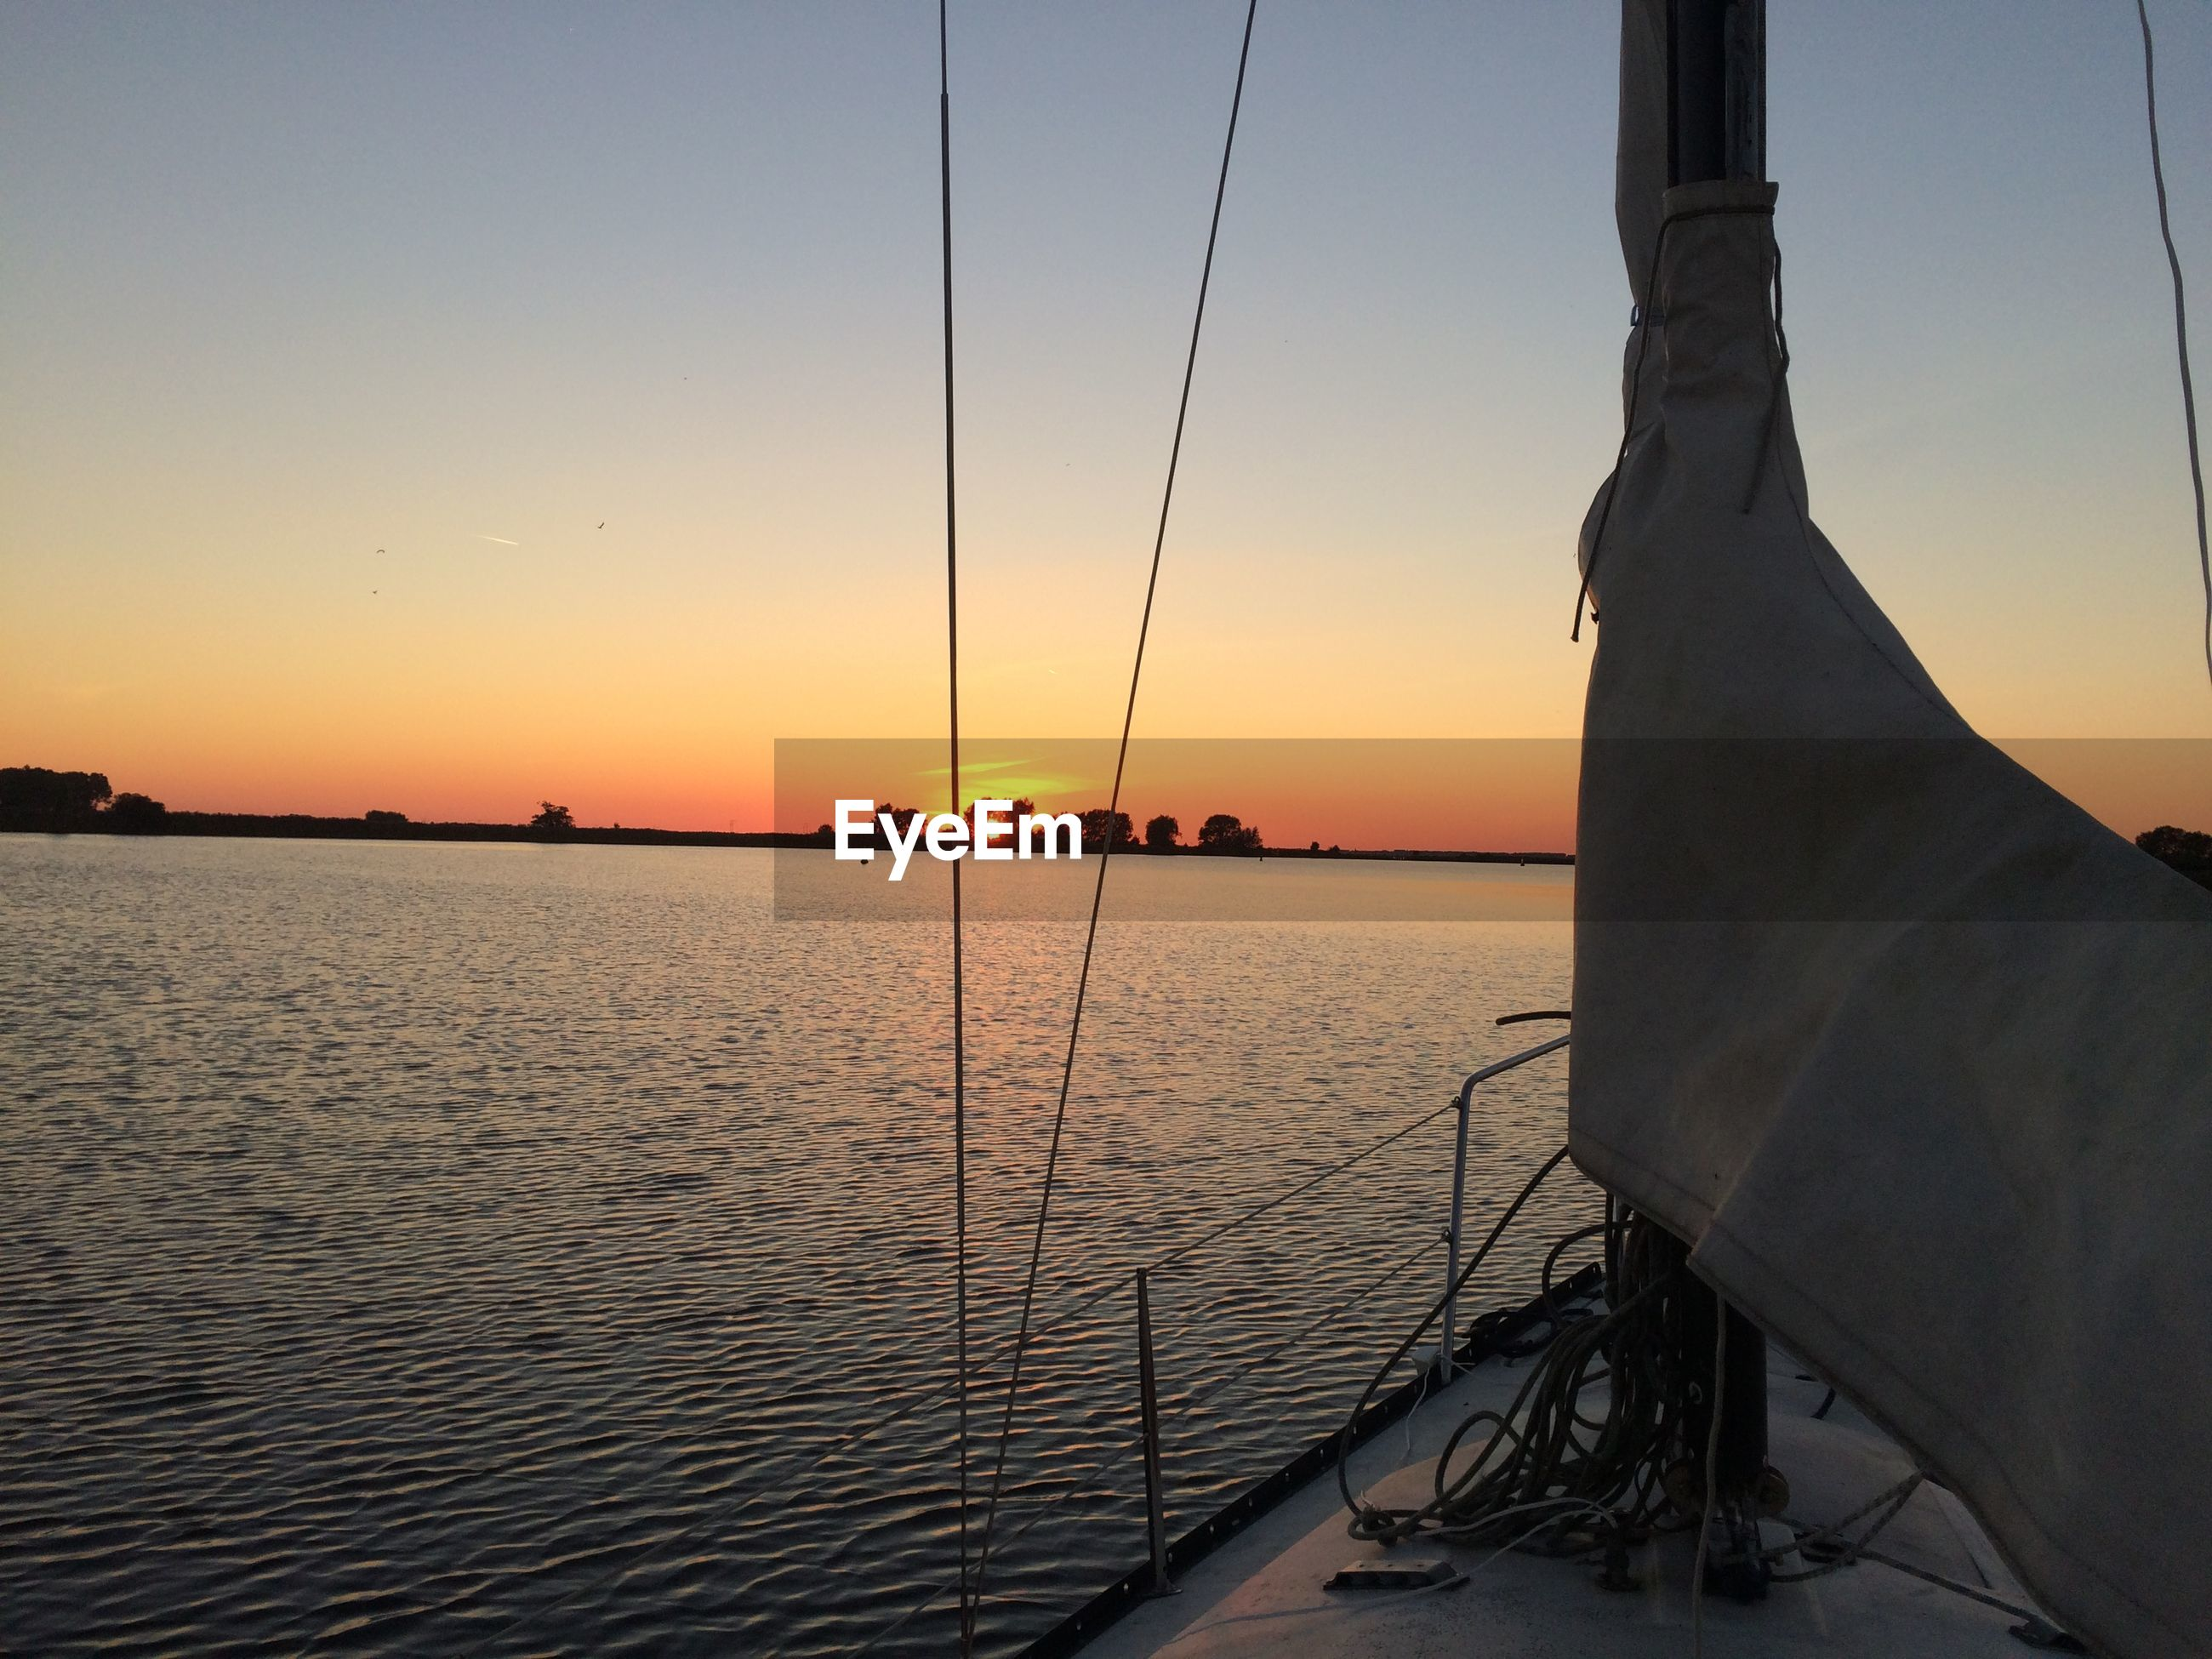 Boat sailing in river against clear sky at sunset